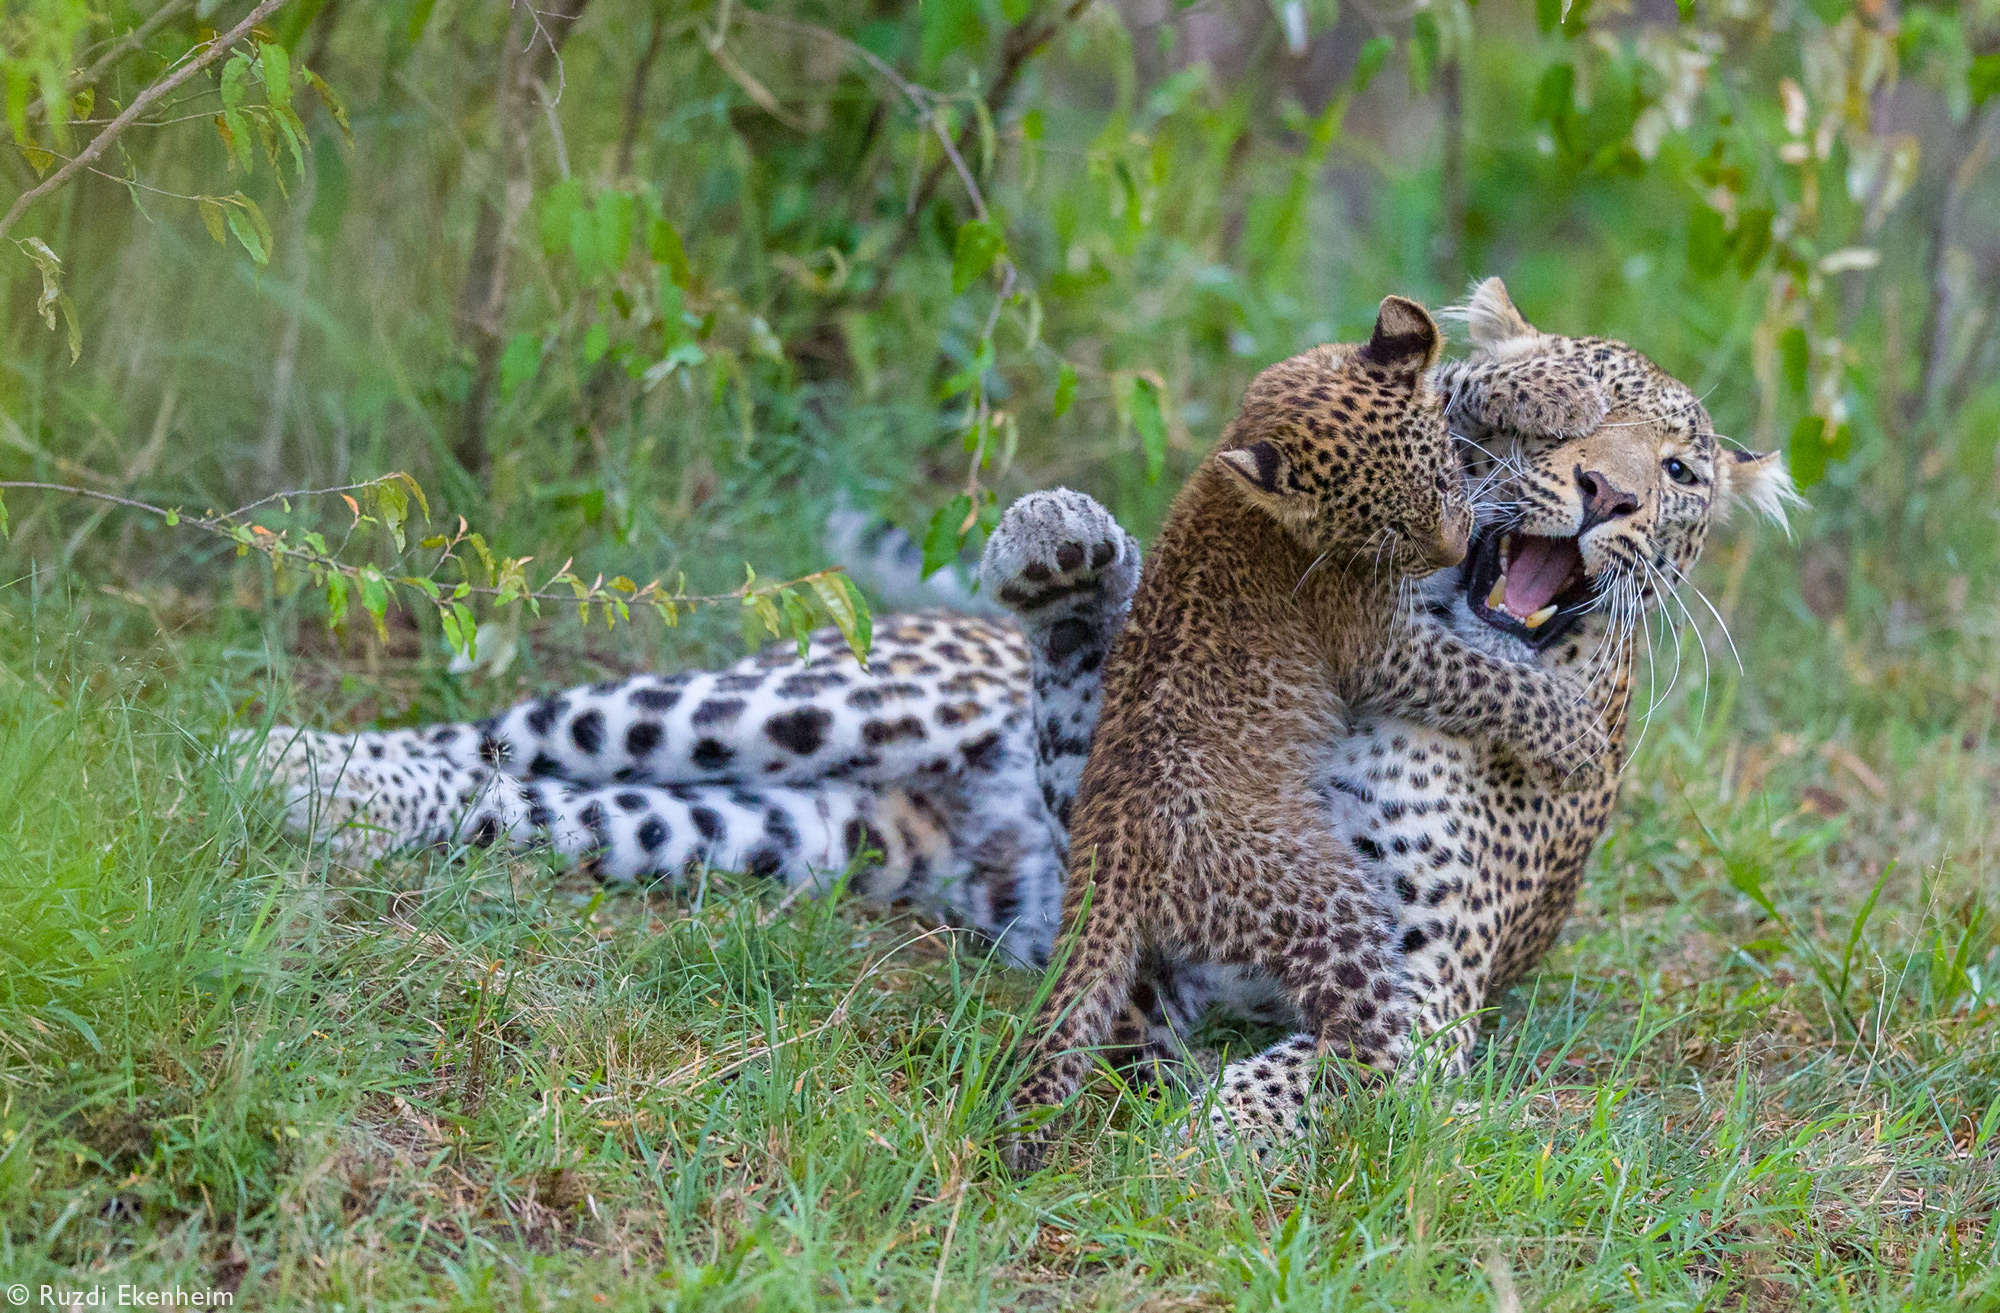 A leopardess and her cub play in Maasai Mara National Reserve, Kenya